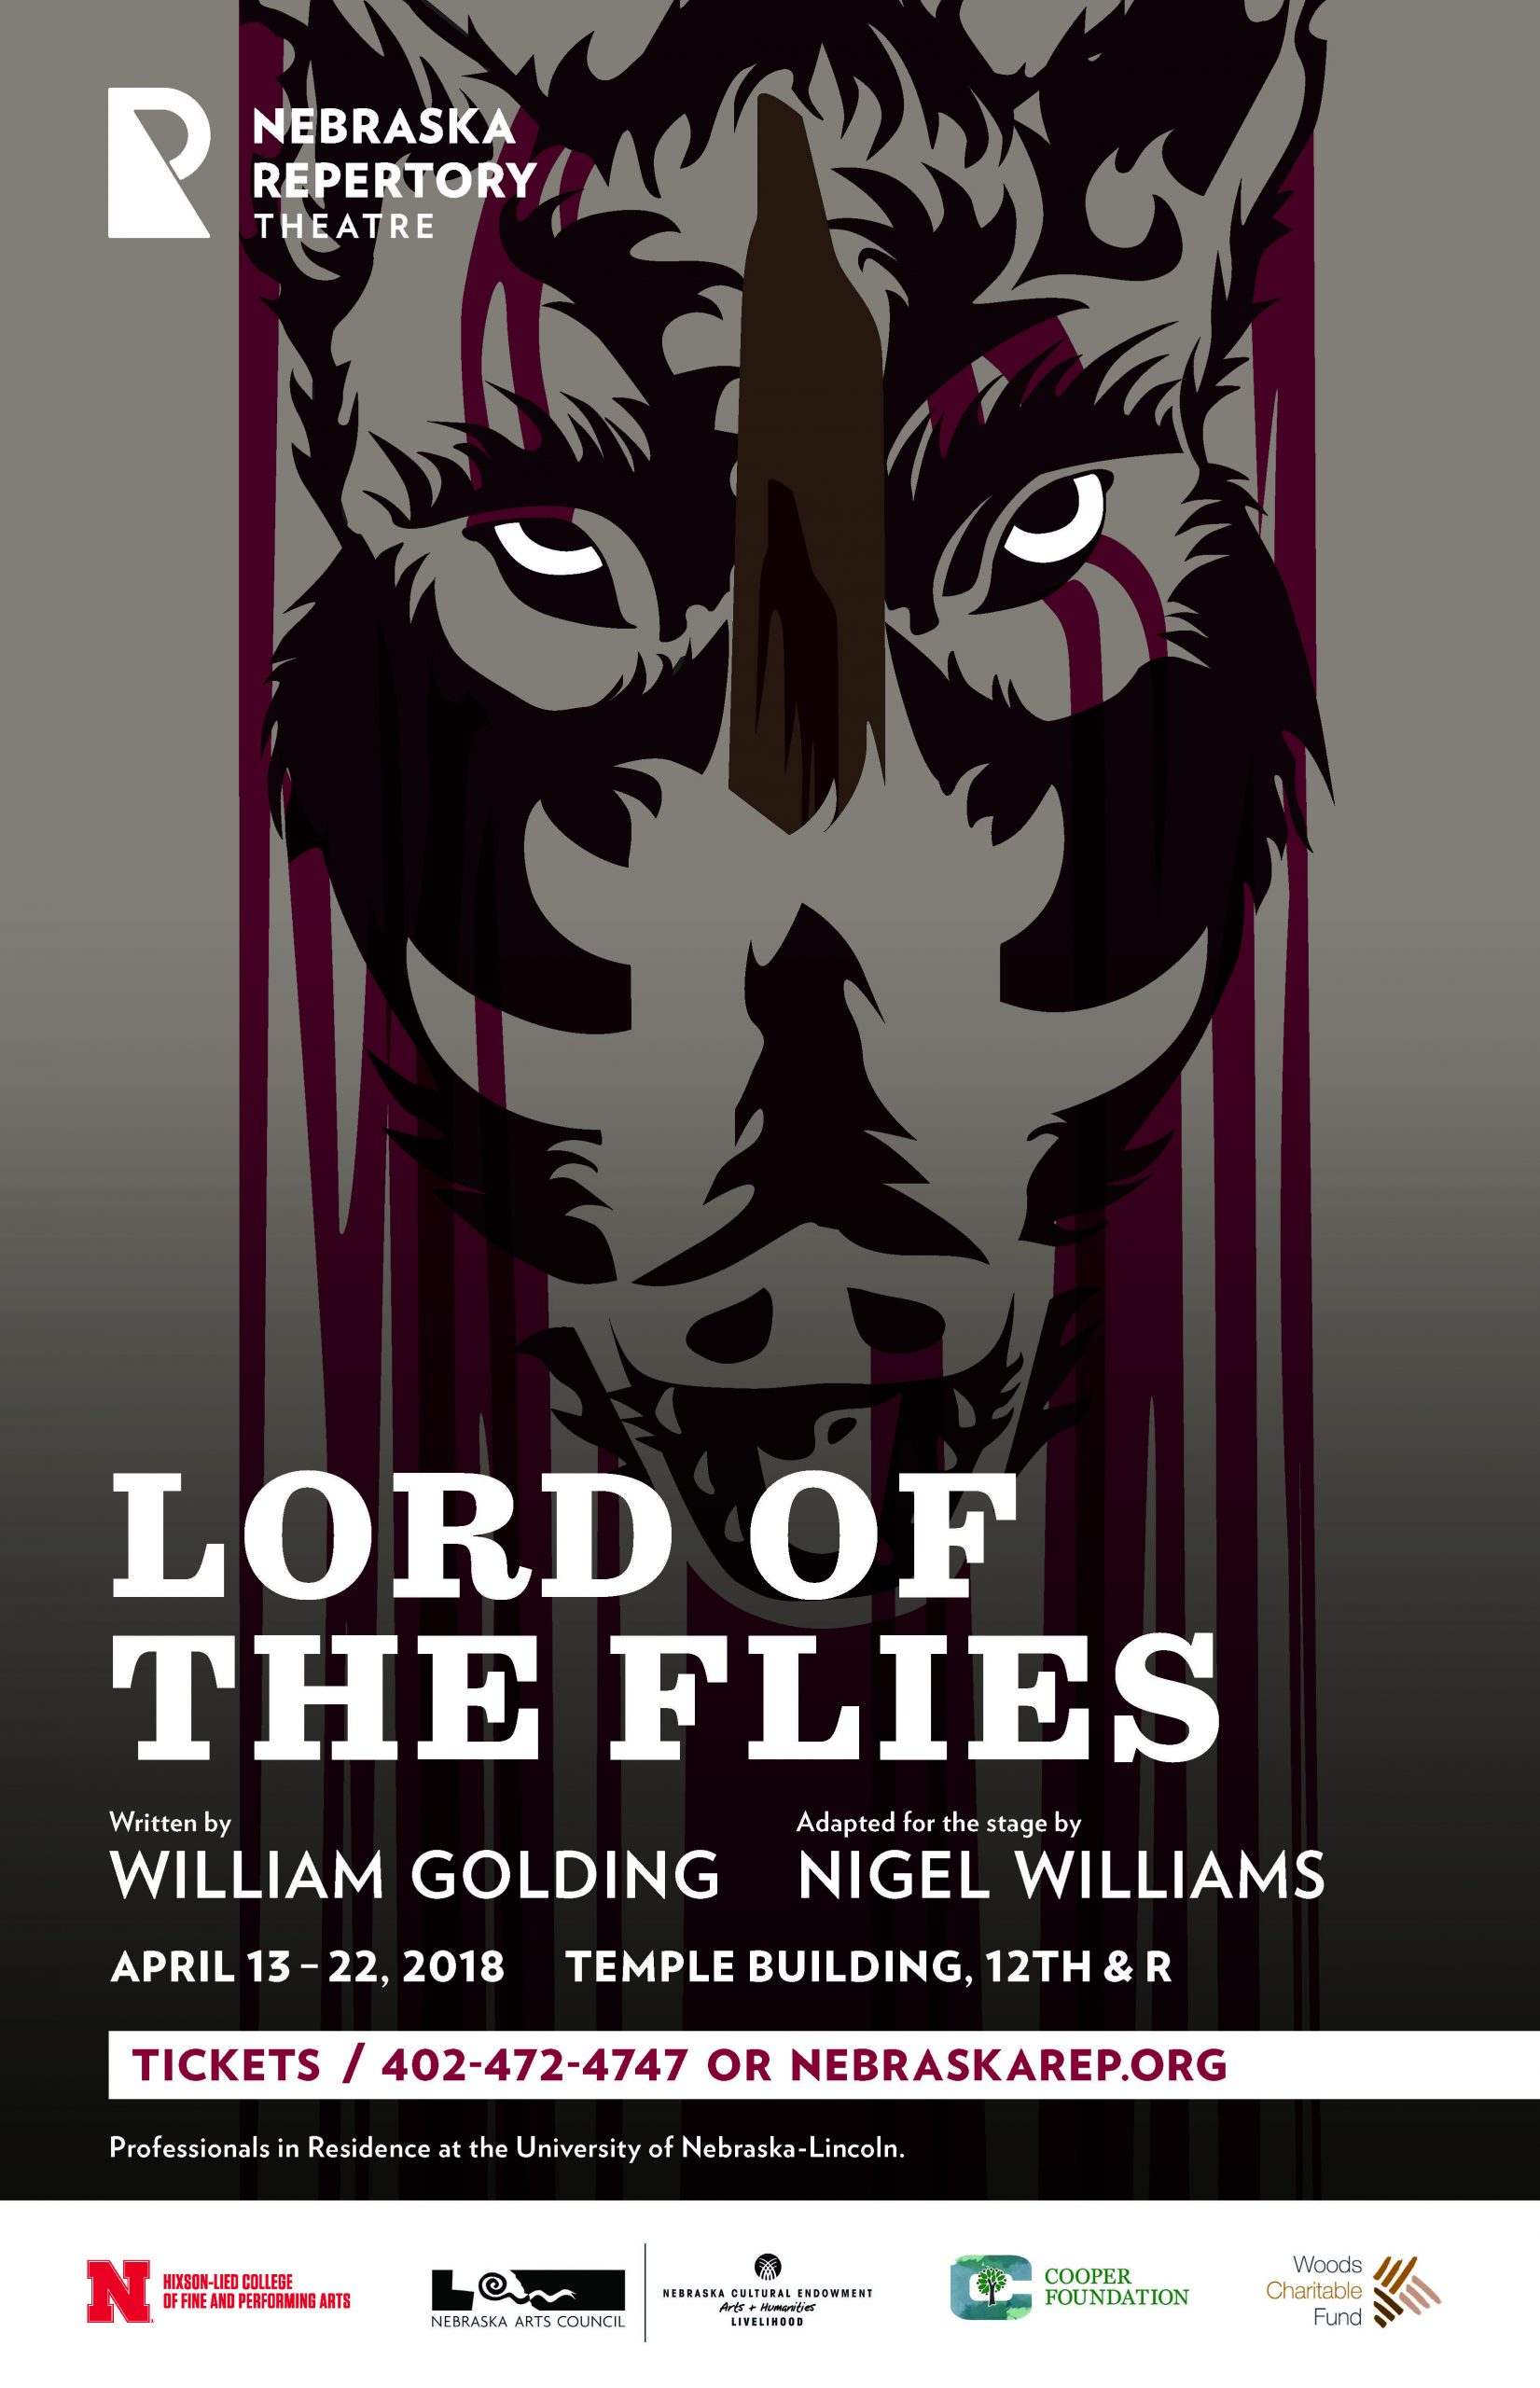 A dark and moody poster with the title 'Lord of the Flies'. In the background leers a graphically depicted boar's head with red streaks running down its fur.